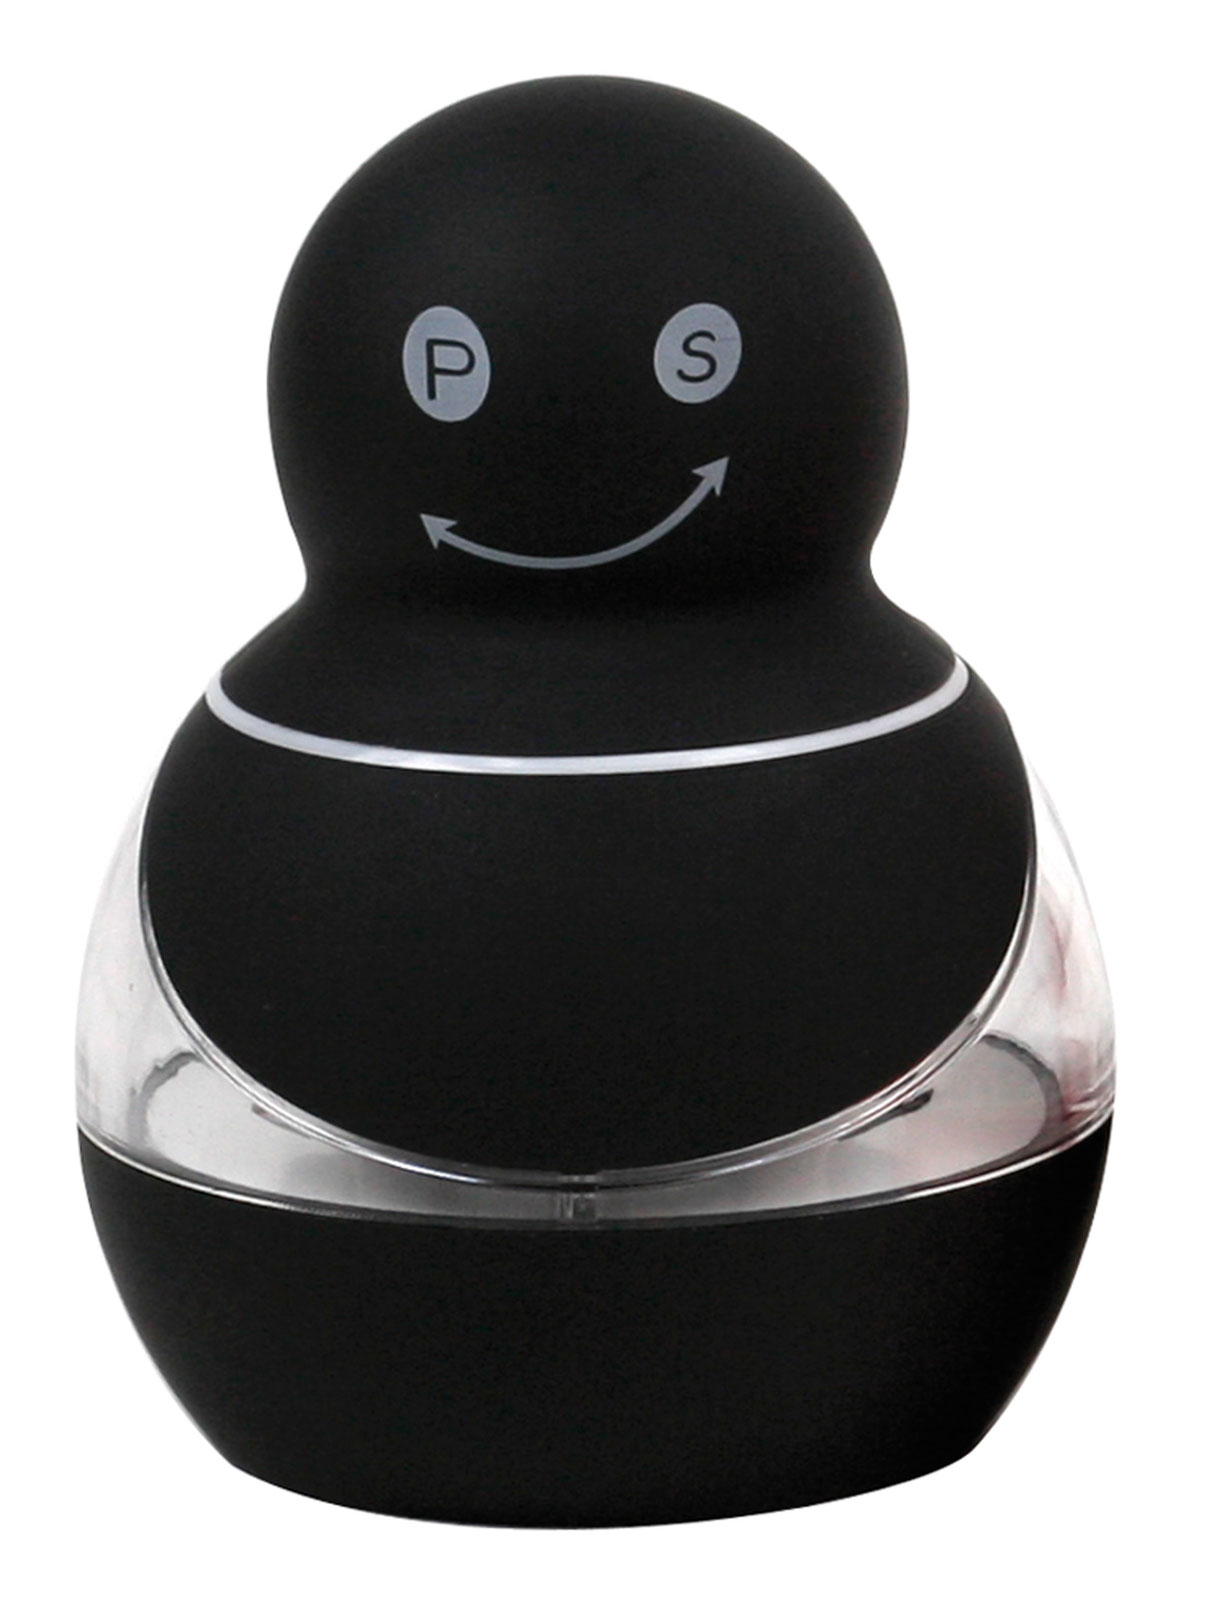 Yoko premium black yokito salt and pepper mill grinder Funky salt and pepper grinders